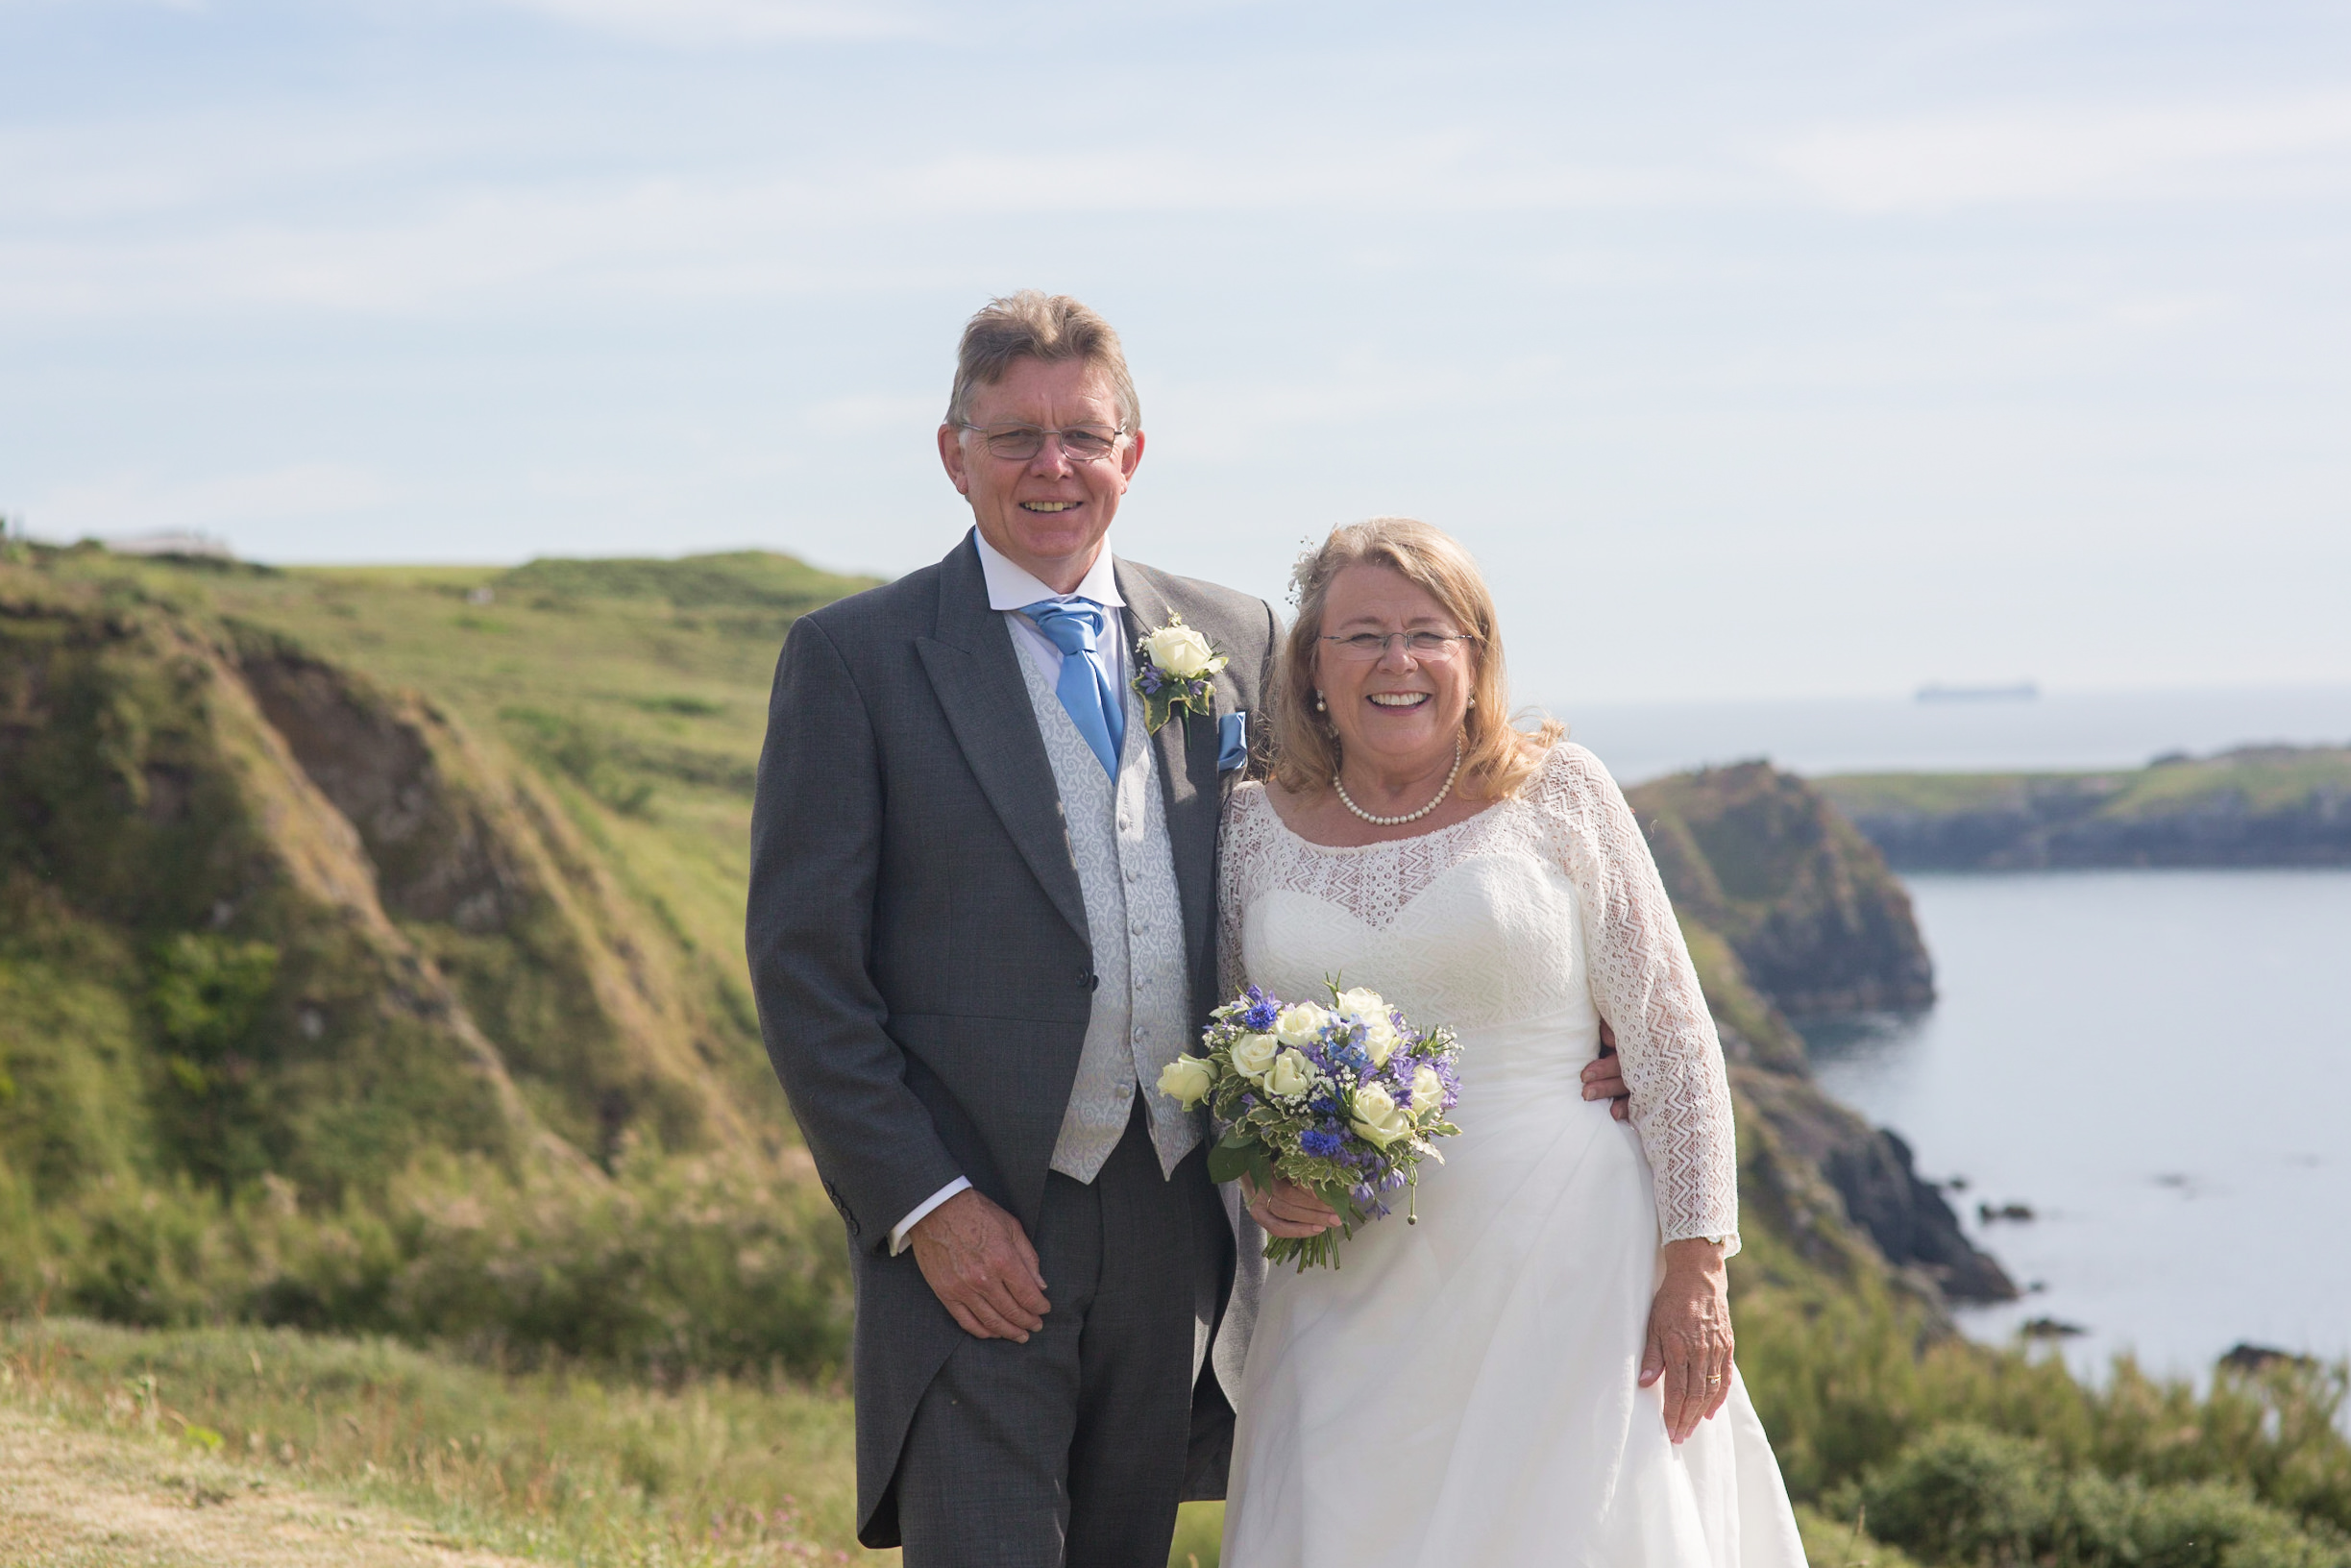 Mullion methodist church wedding Mullion wedding by Tom Robinson photography Cornwall wedding photographer